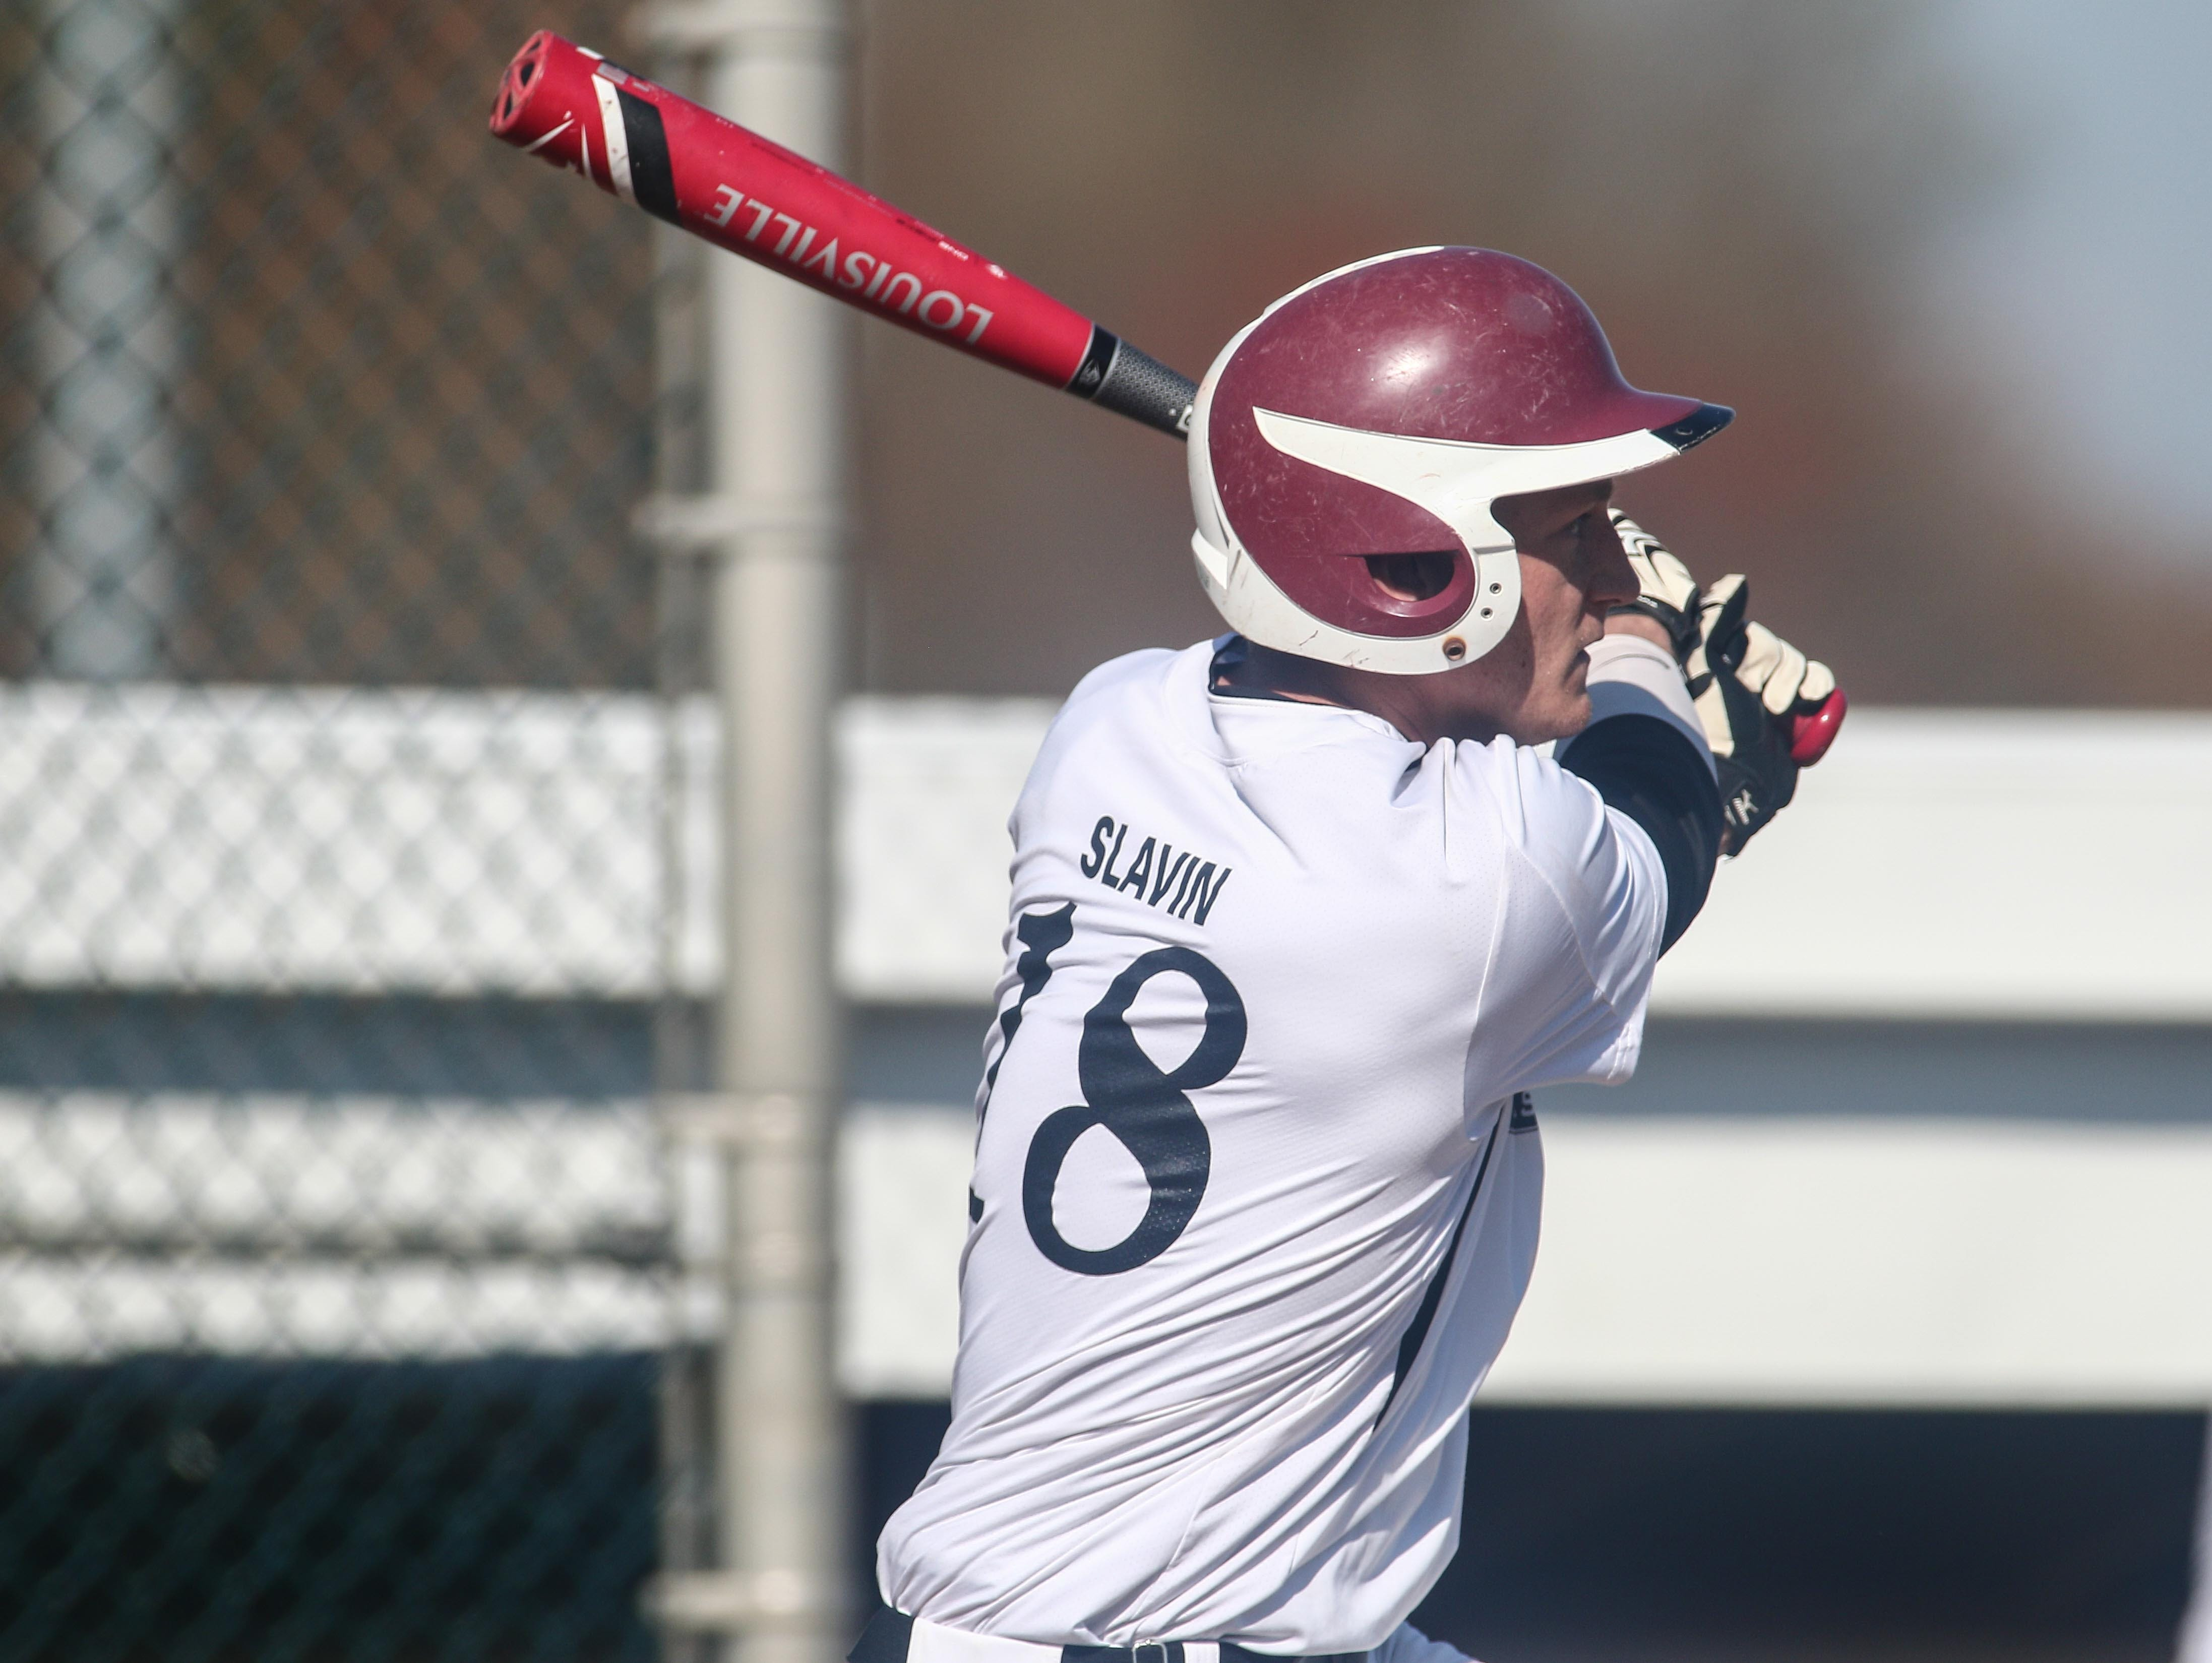 Caravel's Tyler Slavin (18) played a part in the Buccaneers' 10-9 extra inning victory over Conrad on Thursday night.